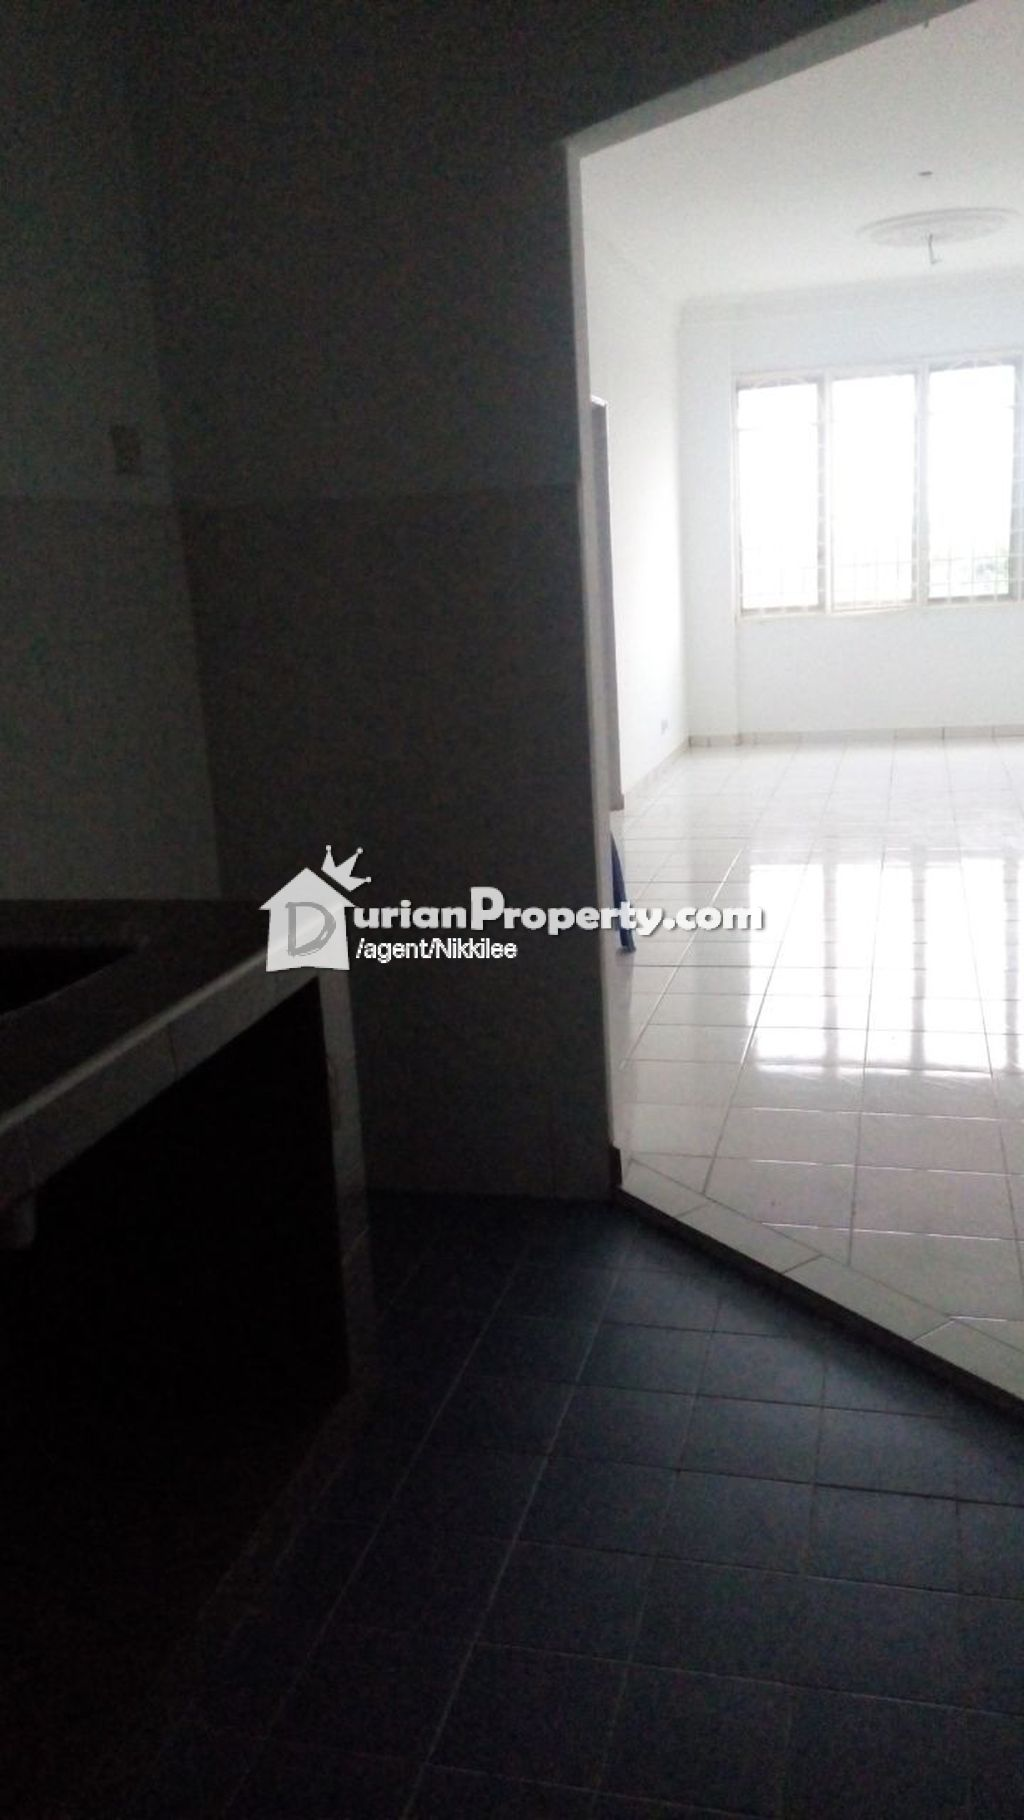 Apartment For Sale at Apartment Suteramas, Kajang for RM 160,000 by ...